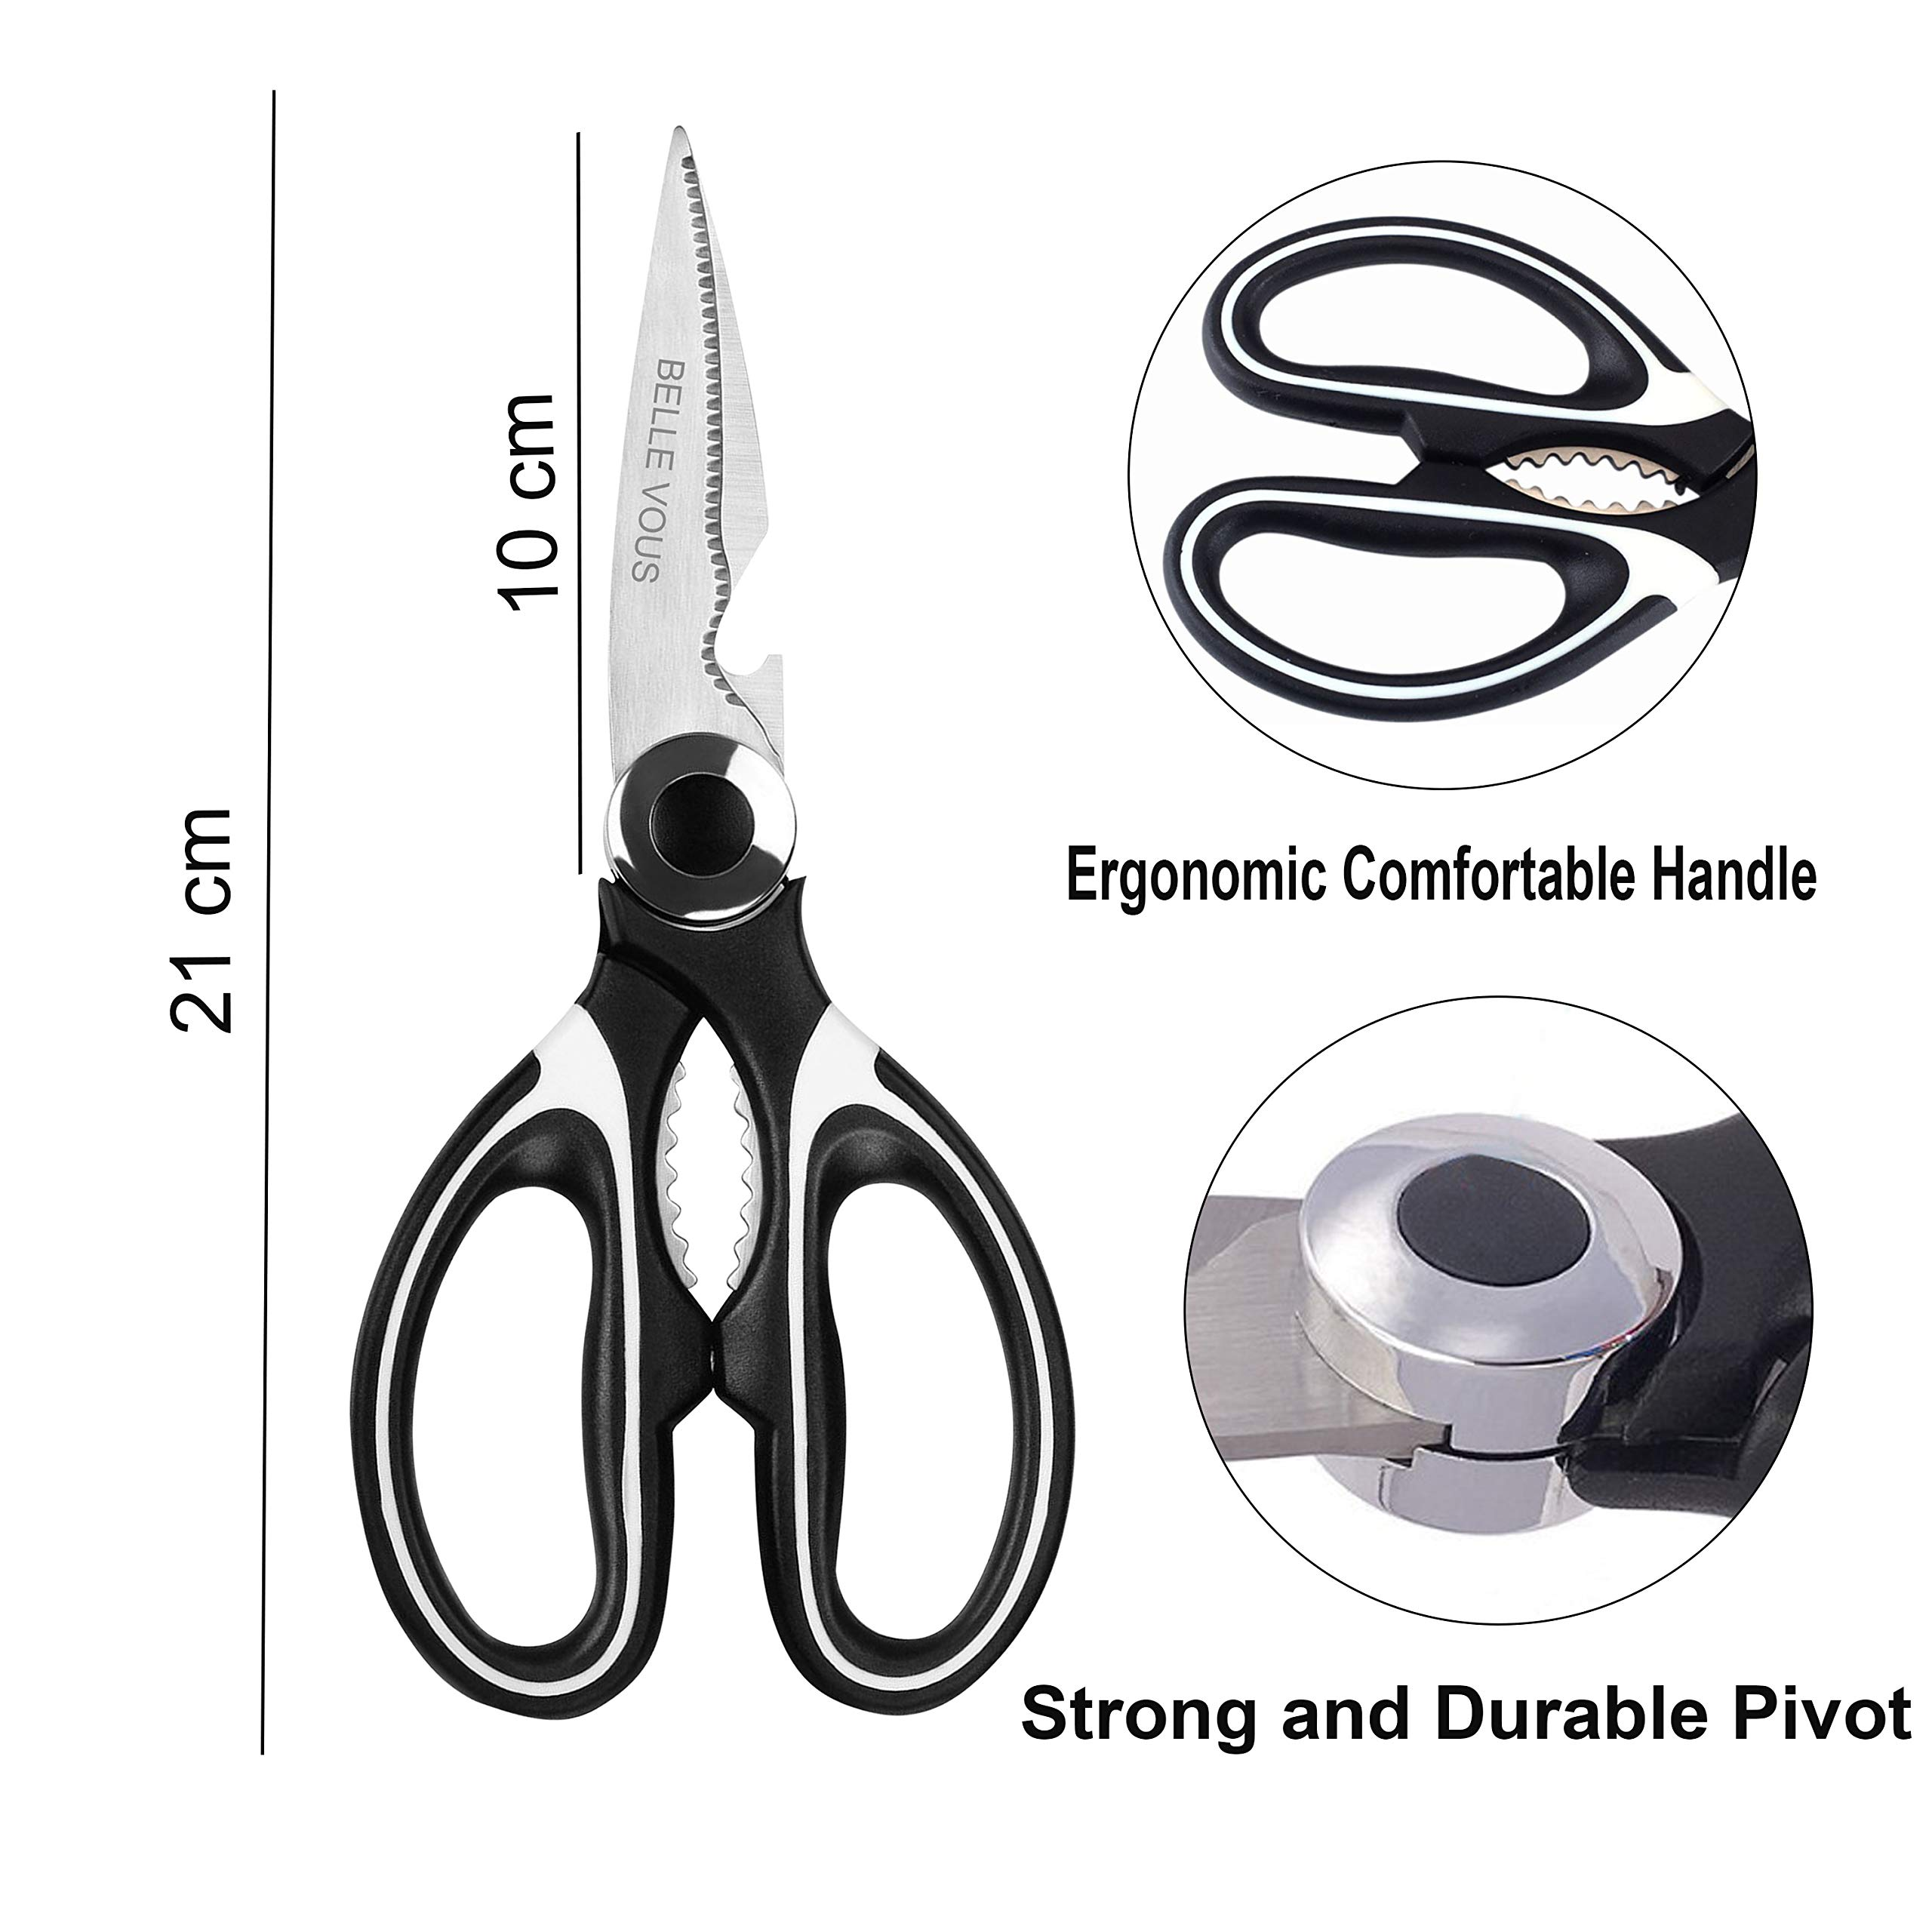 Heavy Duty Kitchen Scissors Set (Pack of 2) - Razor Sharp Multipurpose Utility Shears with Stainless Steel Blade for Herb, Chicken, Fish, Meat, Vegetables - Kitchen Shears (Black) by BELLE VOUS (Image #4)